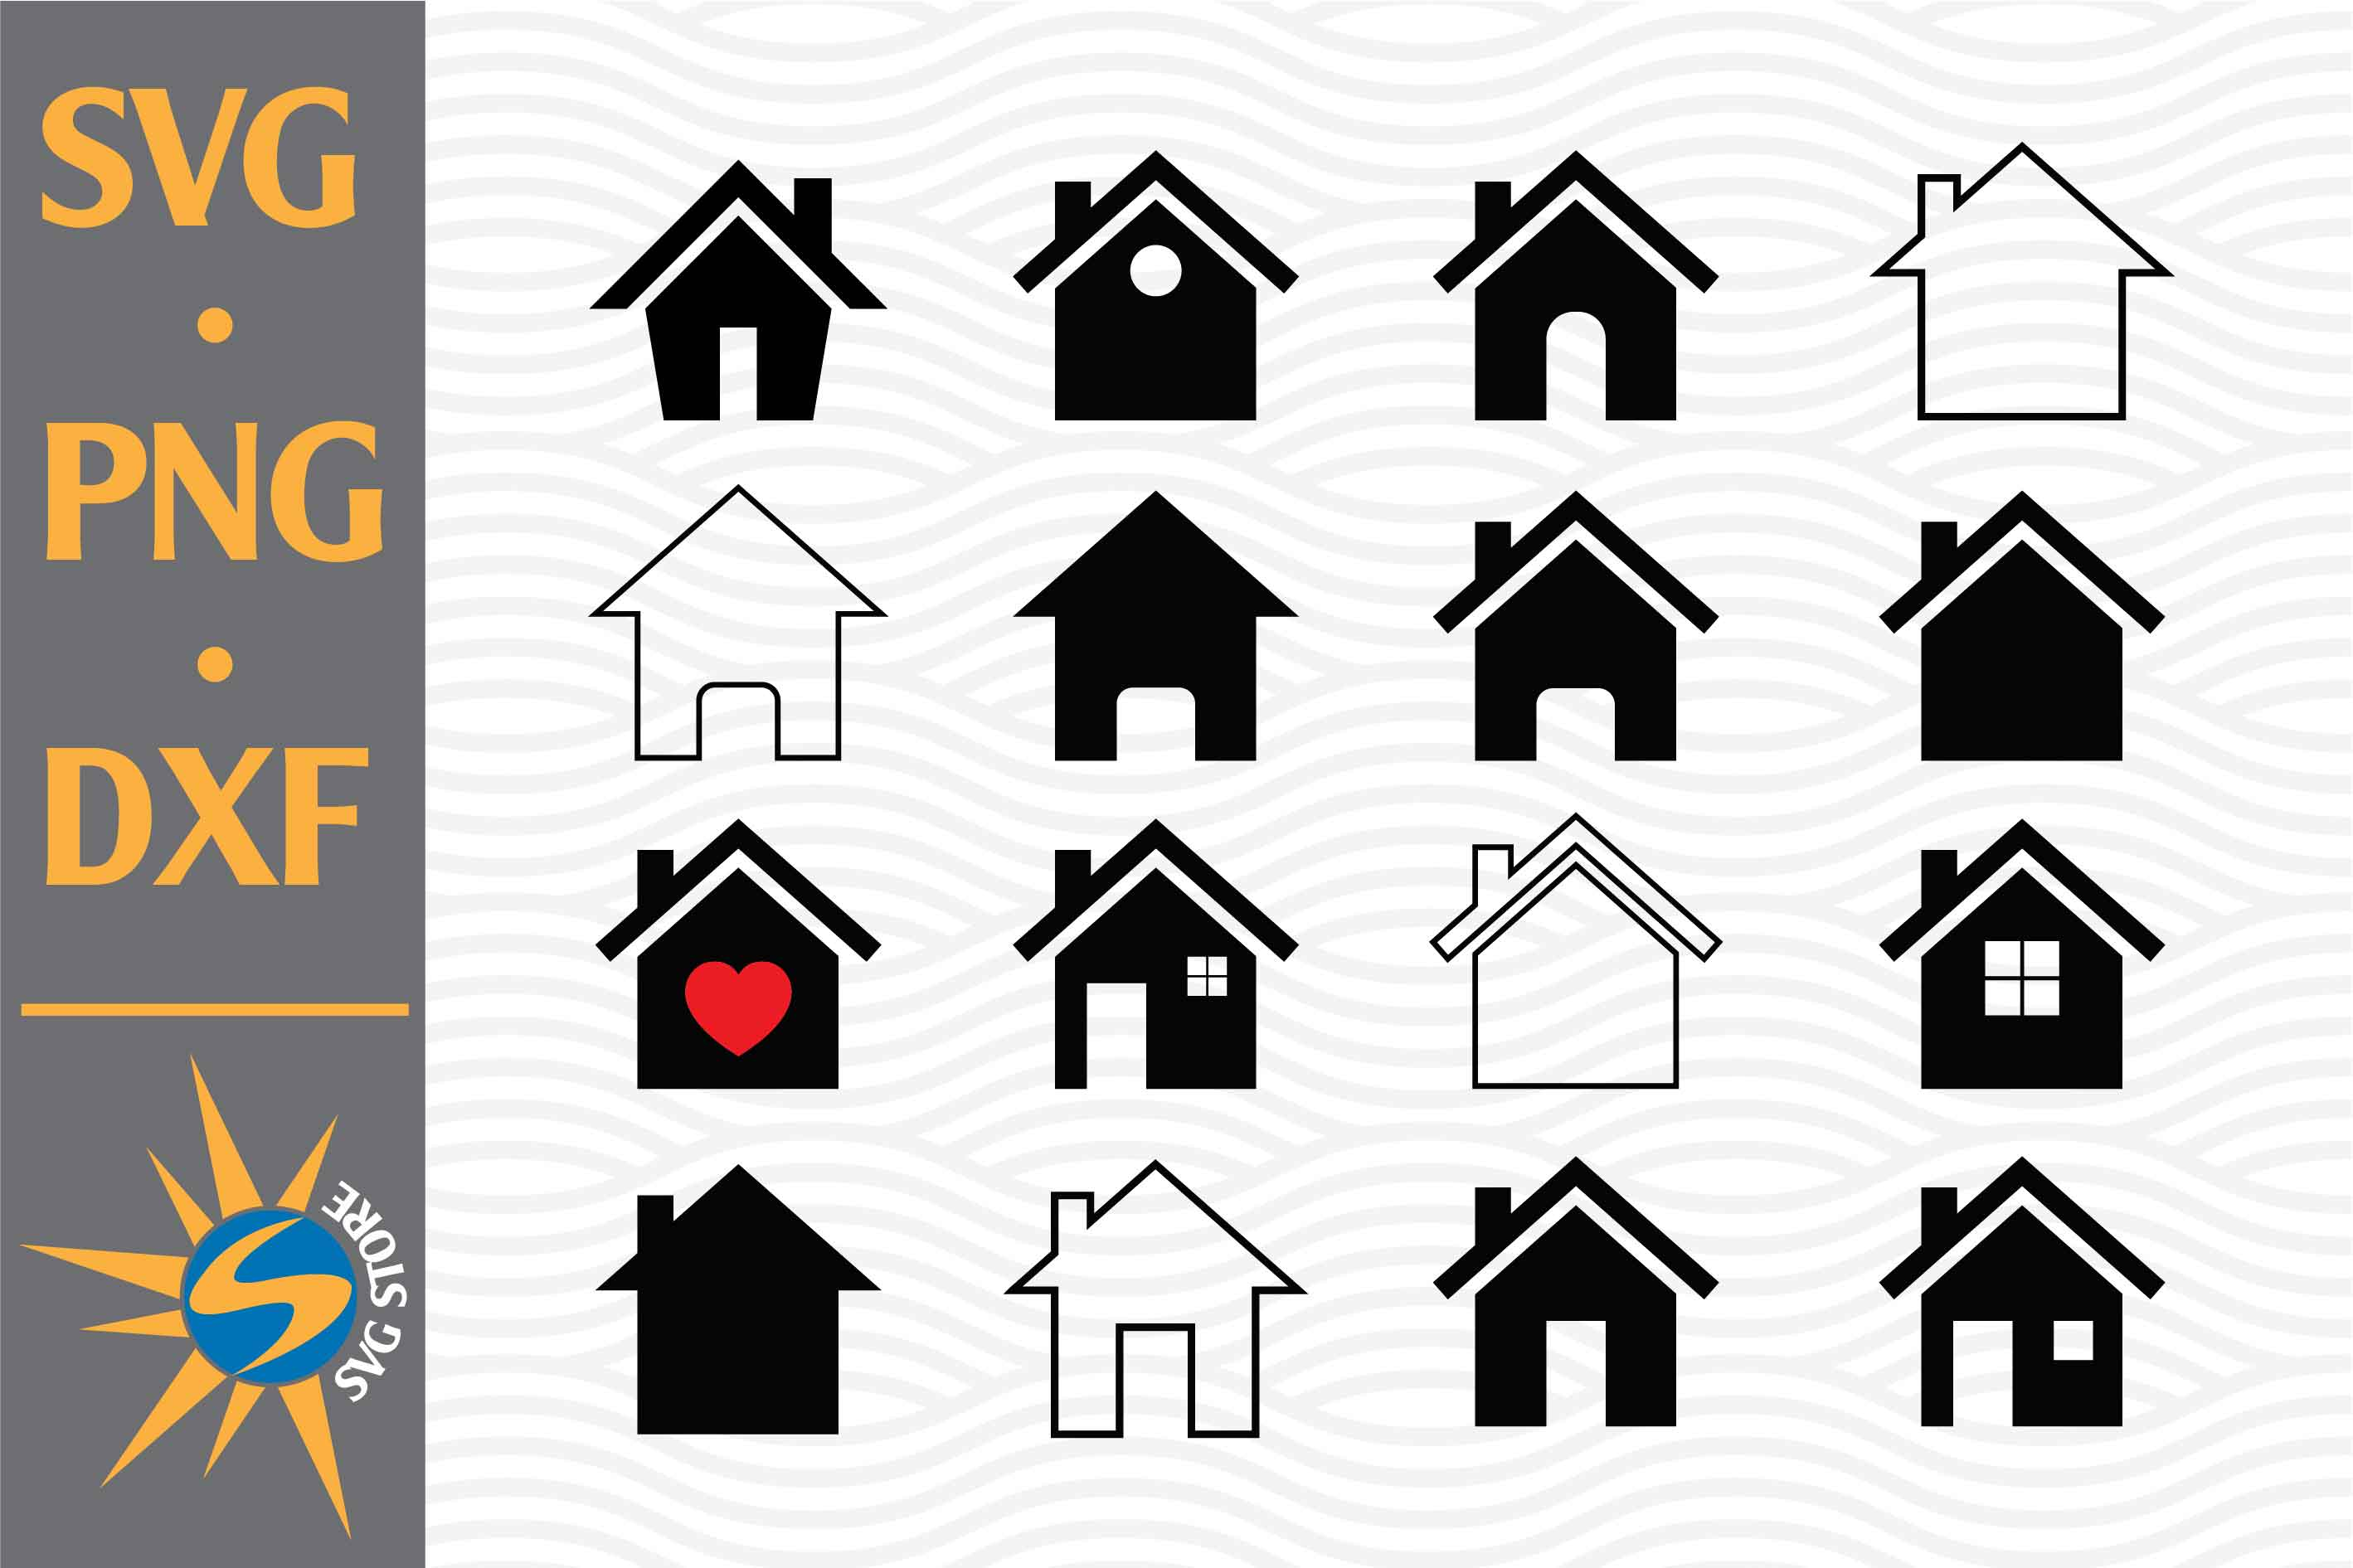 House Graphic SVG File